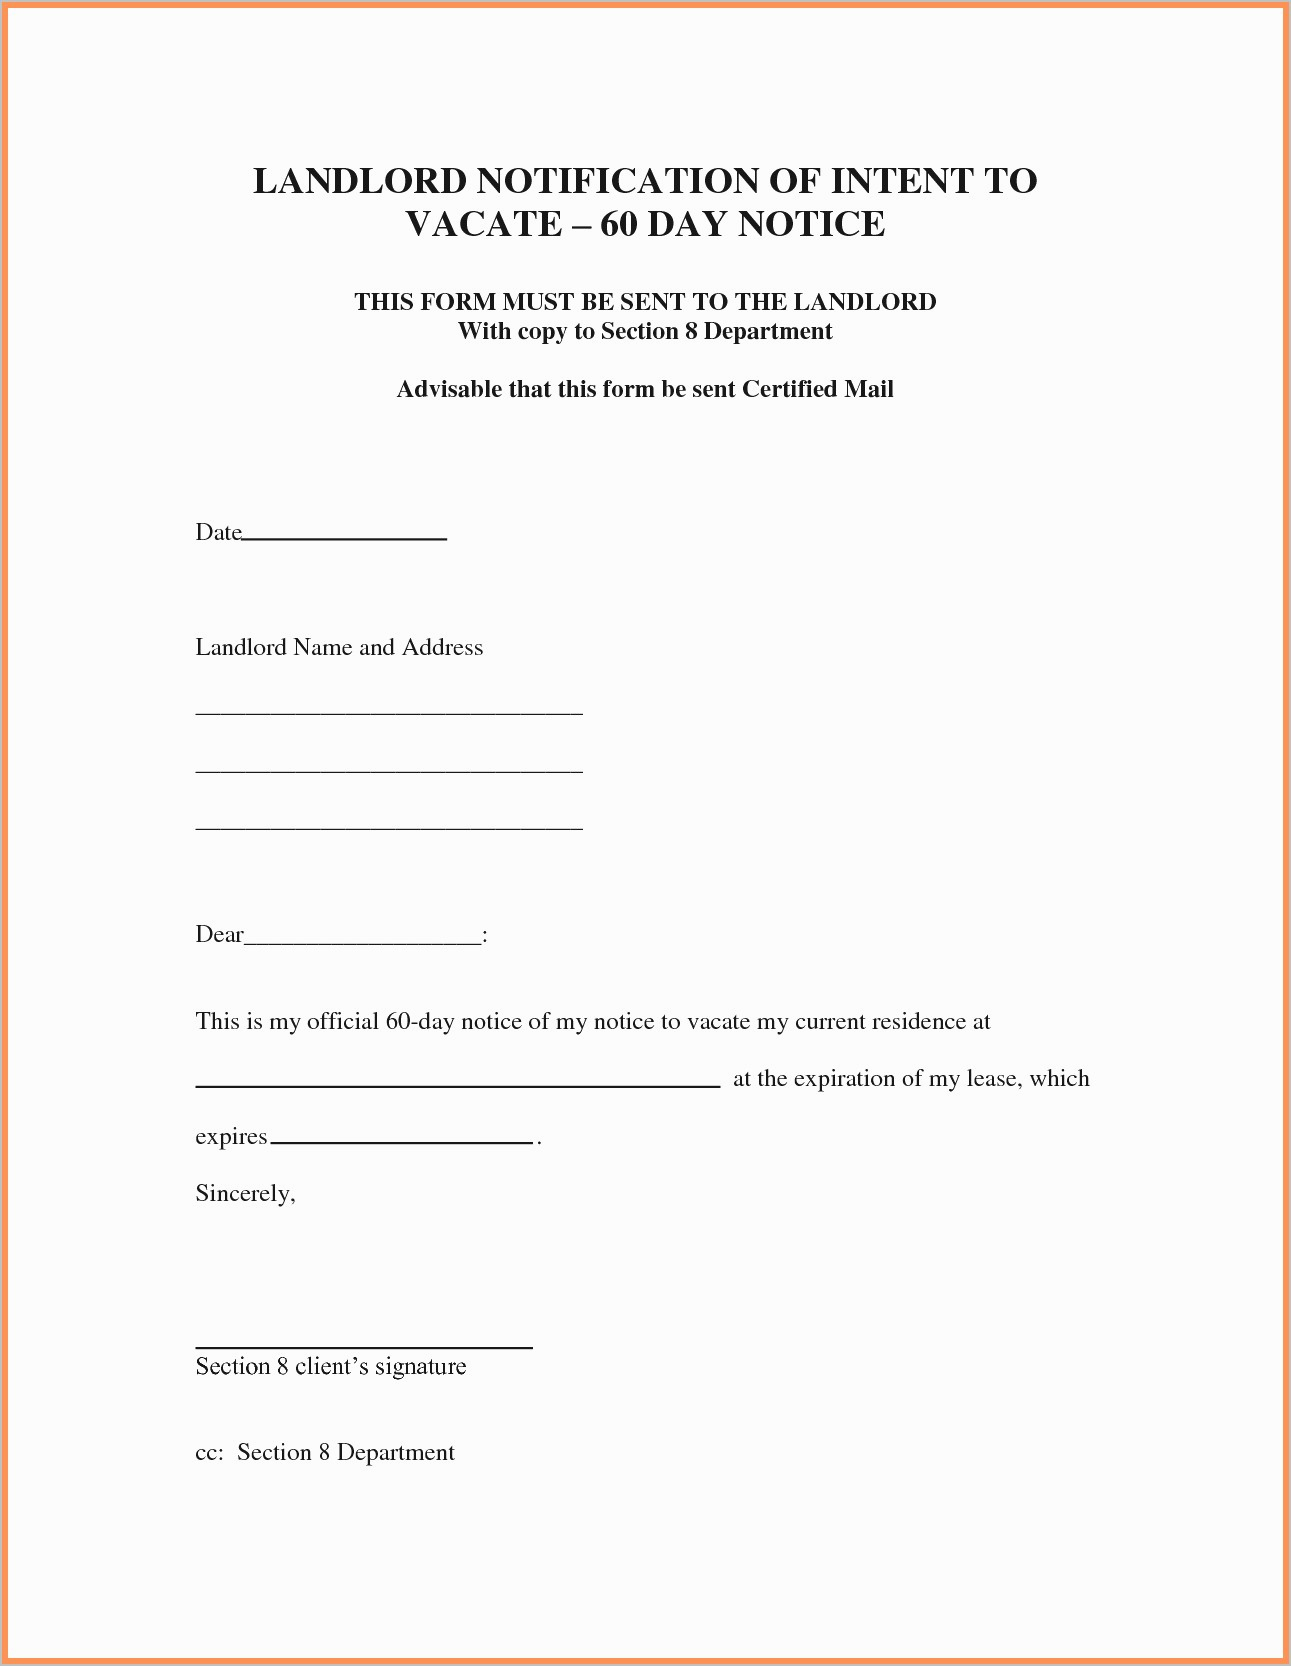 Letter Of Intent to Evict Template - Notice to Vacate form Elegant Eviction Notice Example Eviction